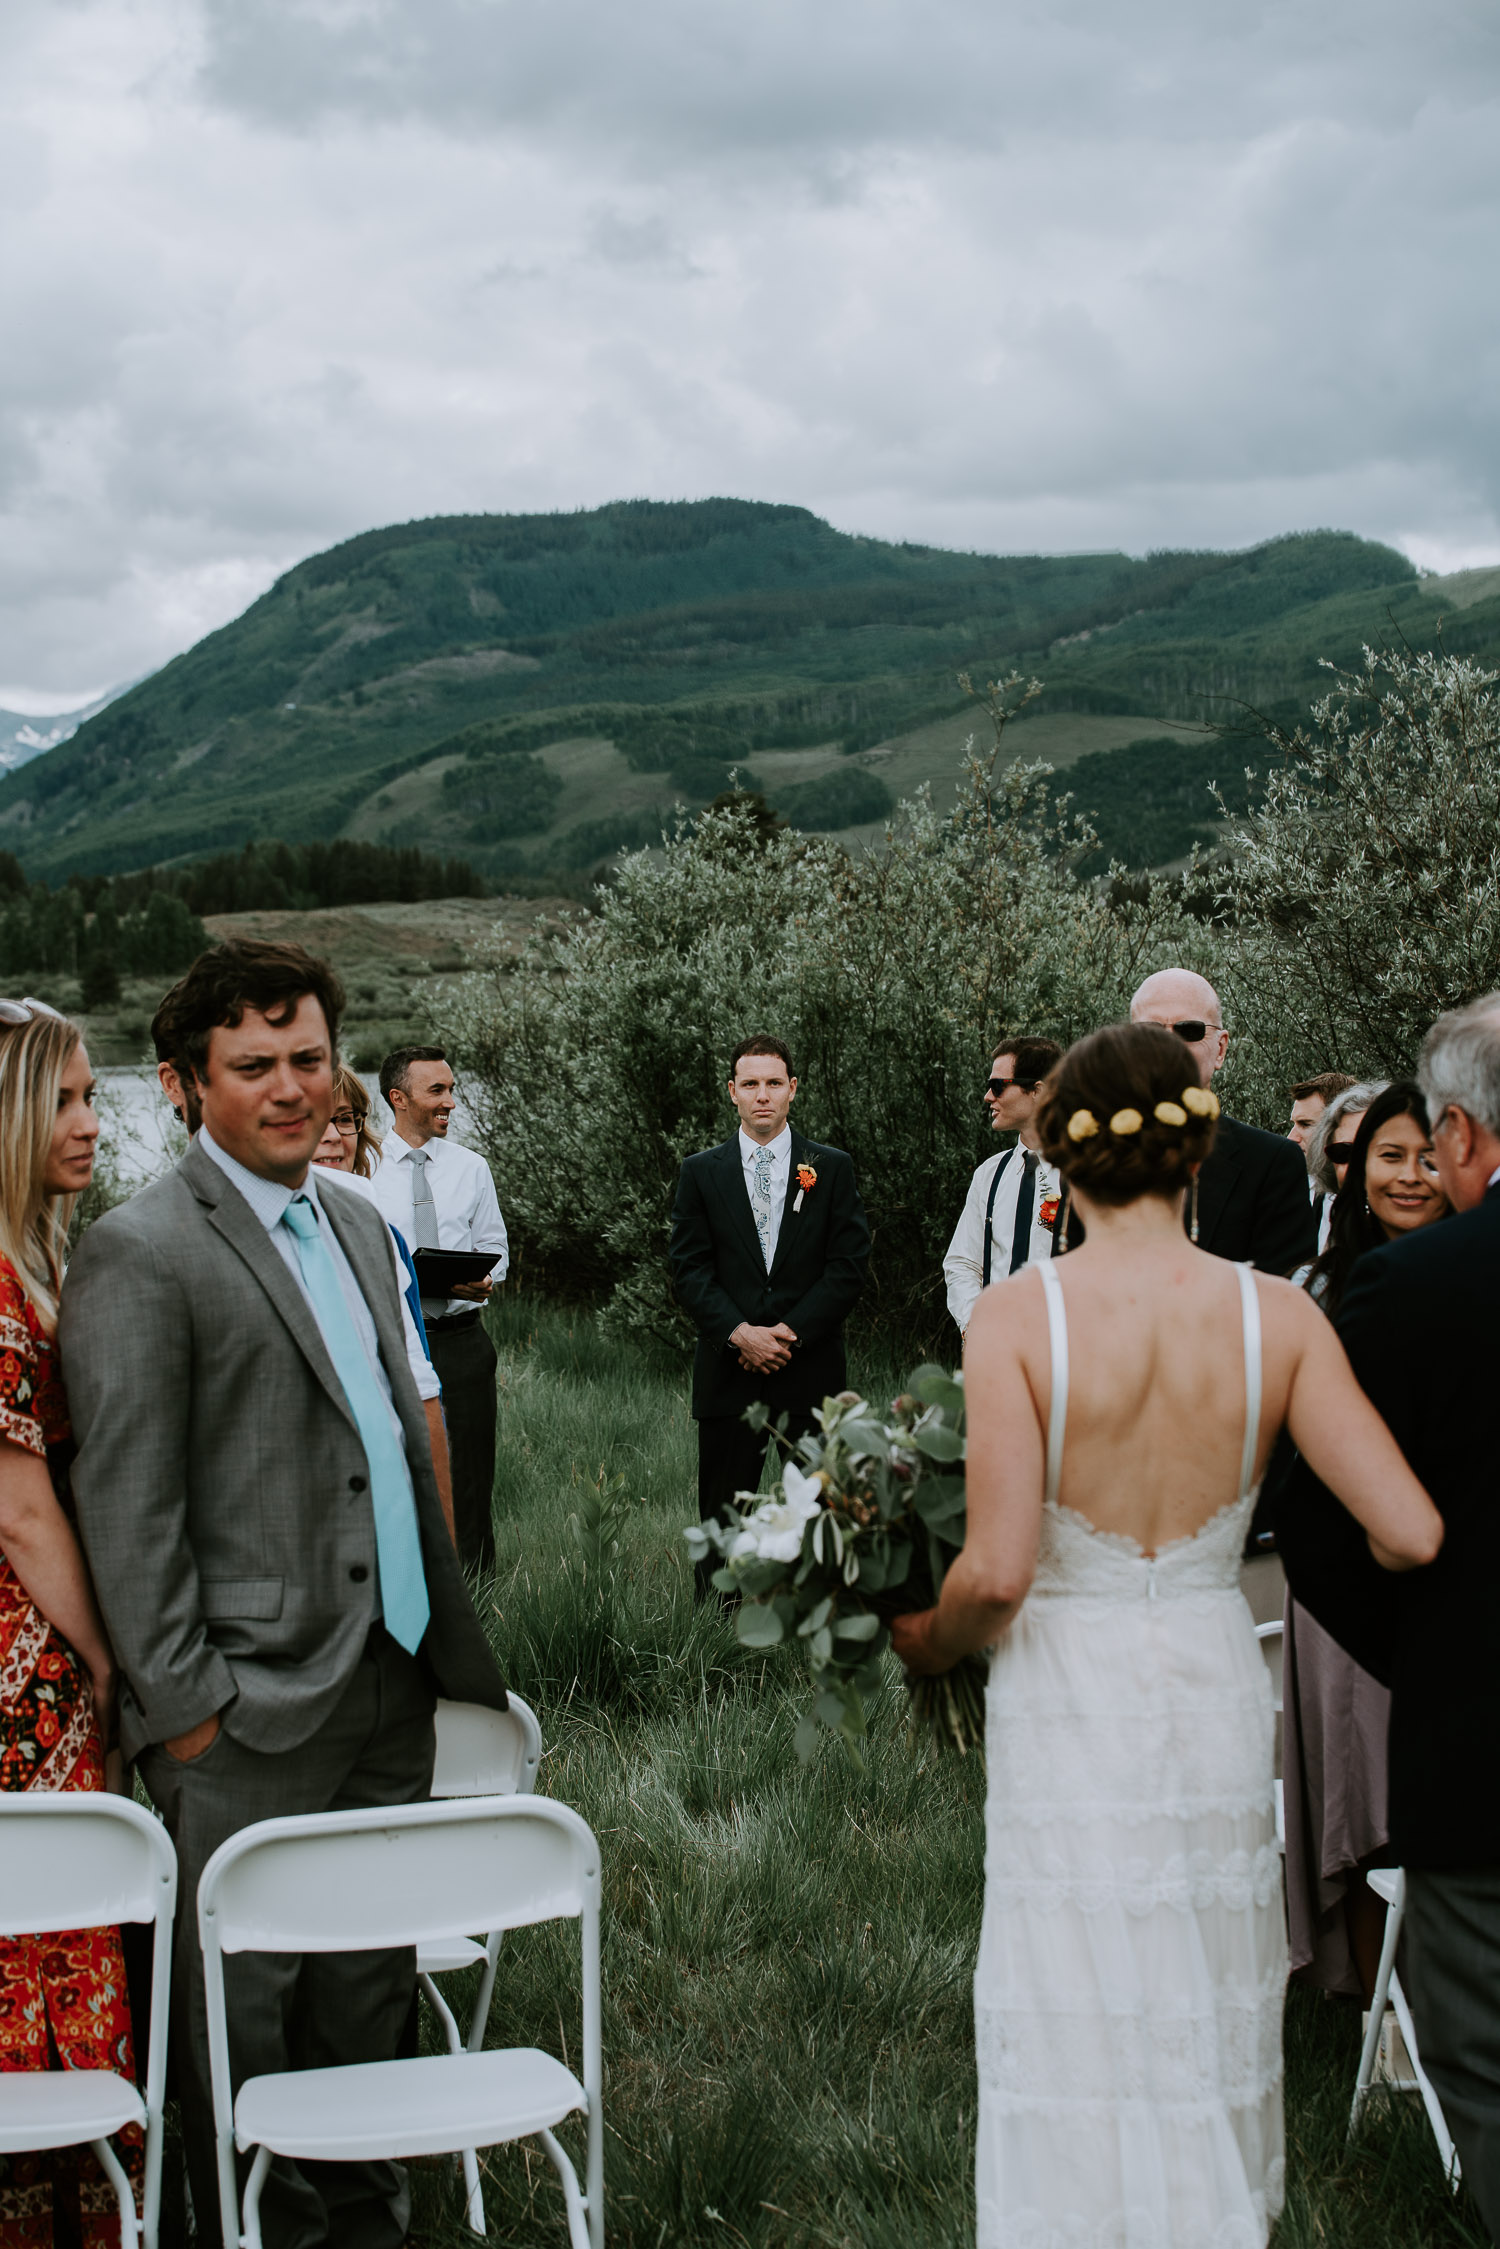 Colorado Wedding Photography, Intimate Wedding, Colorado elopement photography, crested butte wedding, walking down the aisle